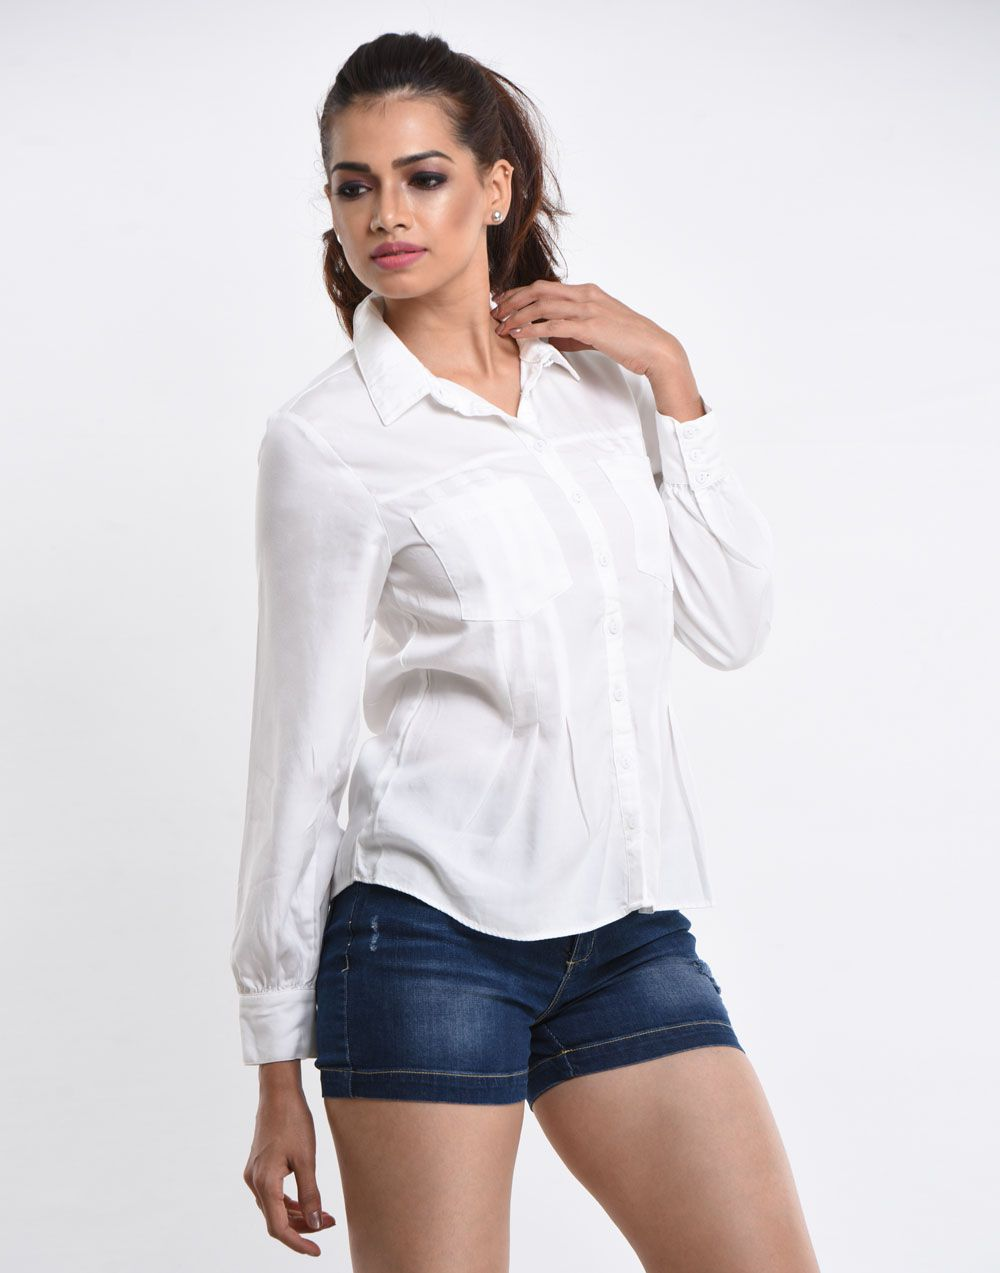 Beauty In White Shirt